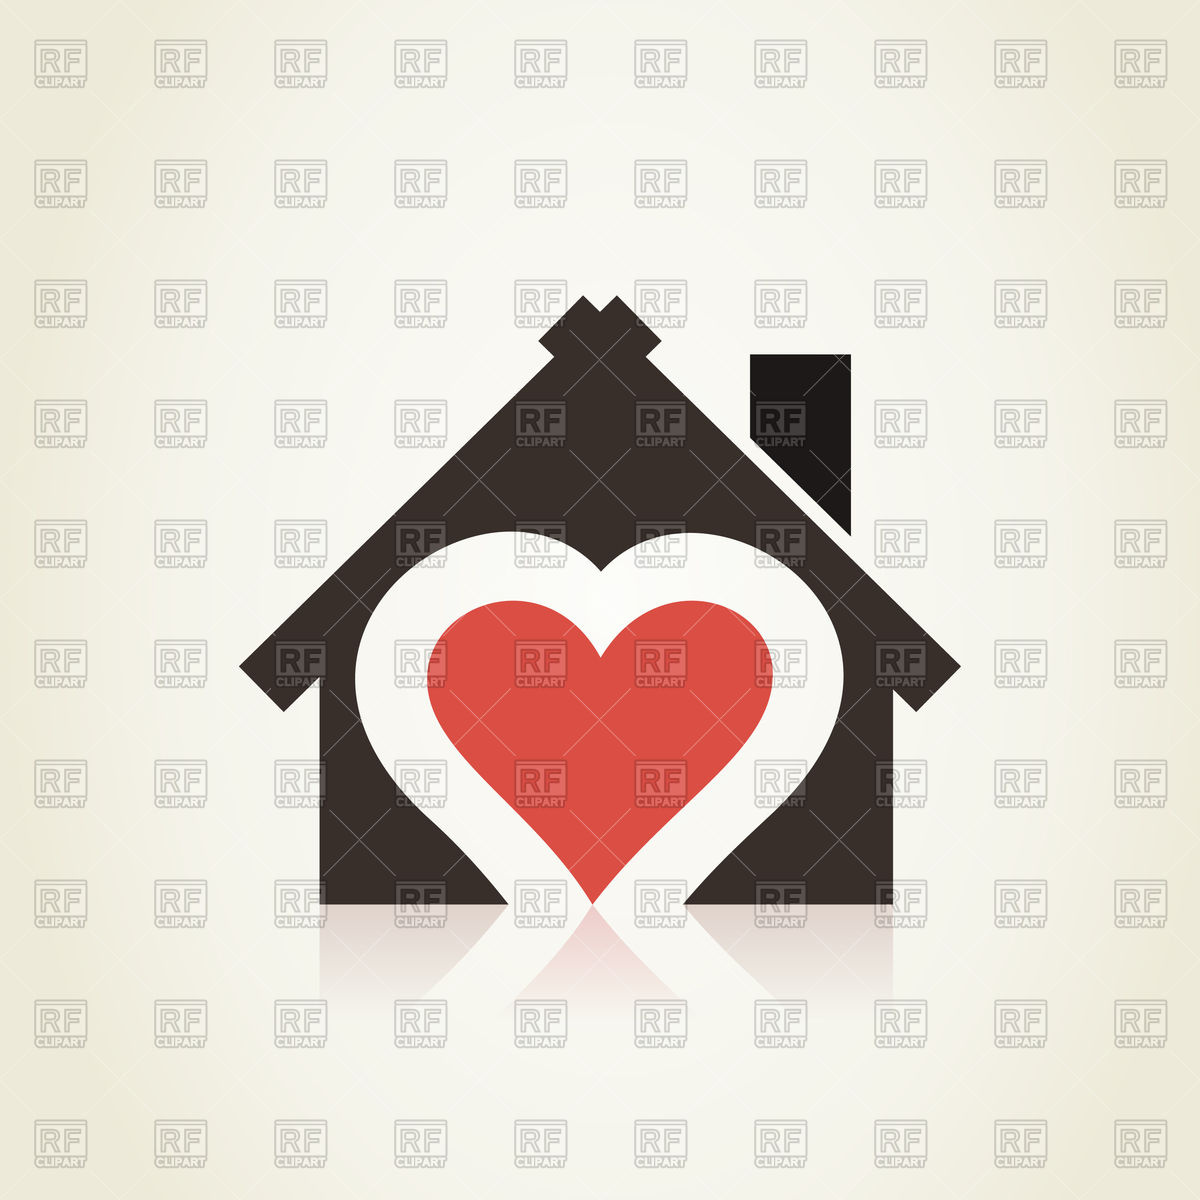 Heart in house icon Vector Image #80416.